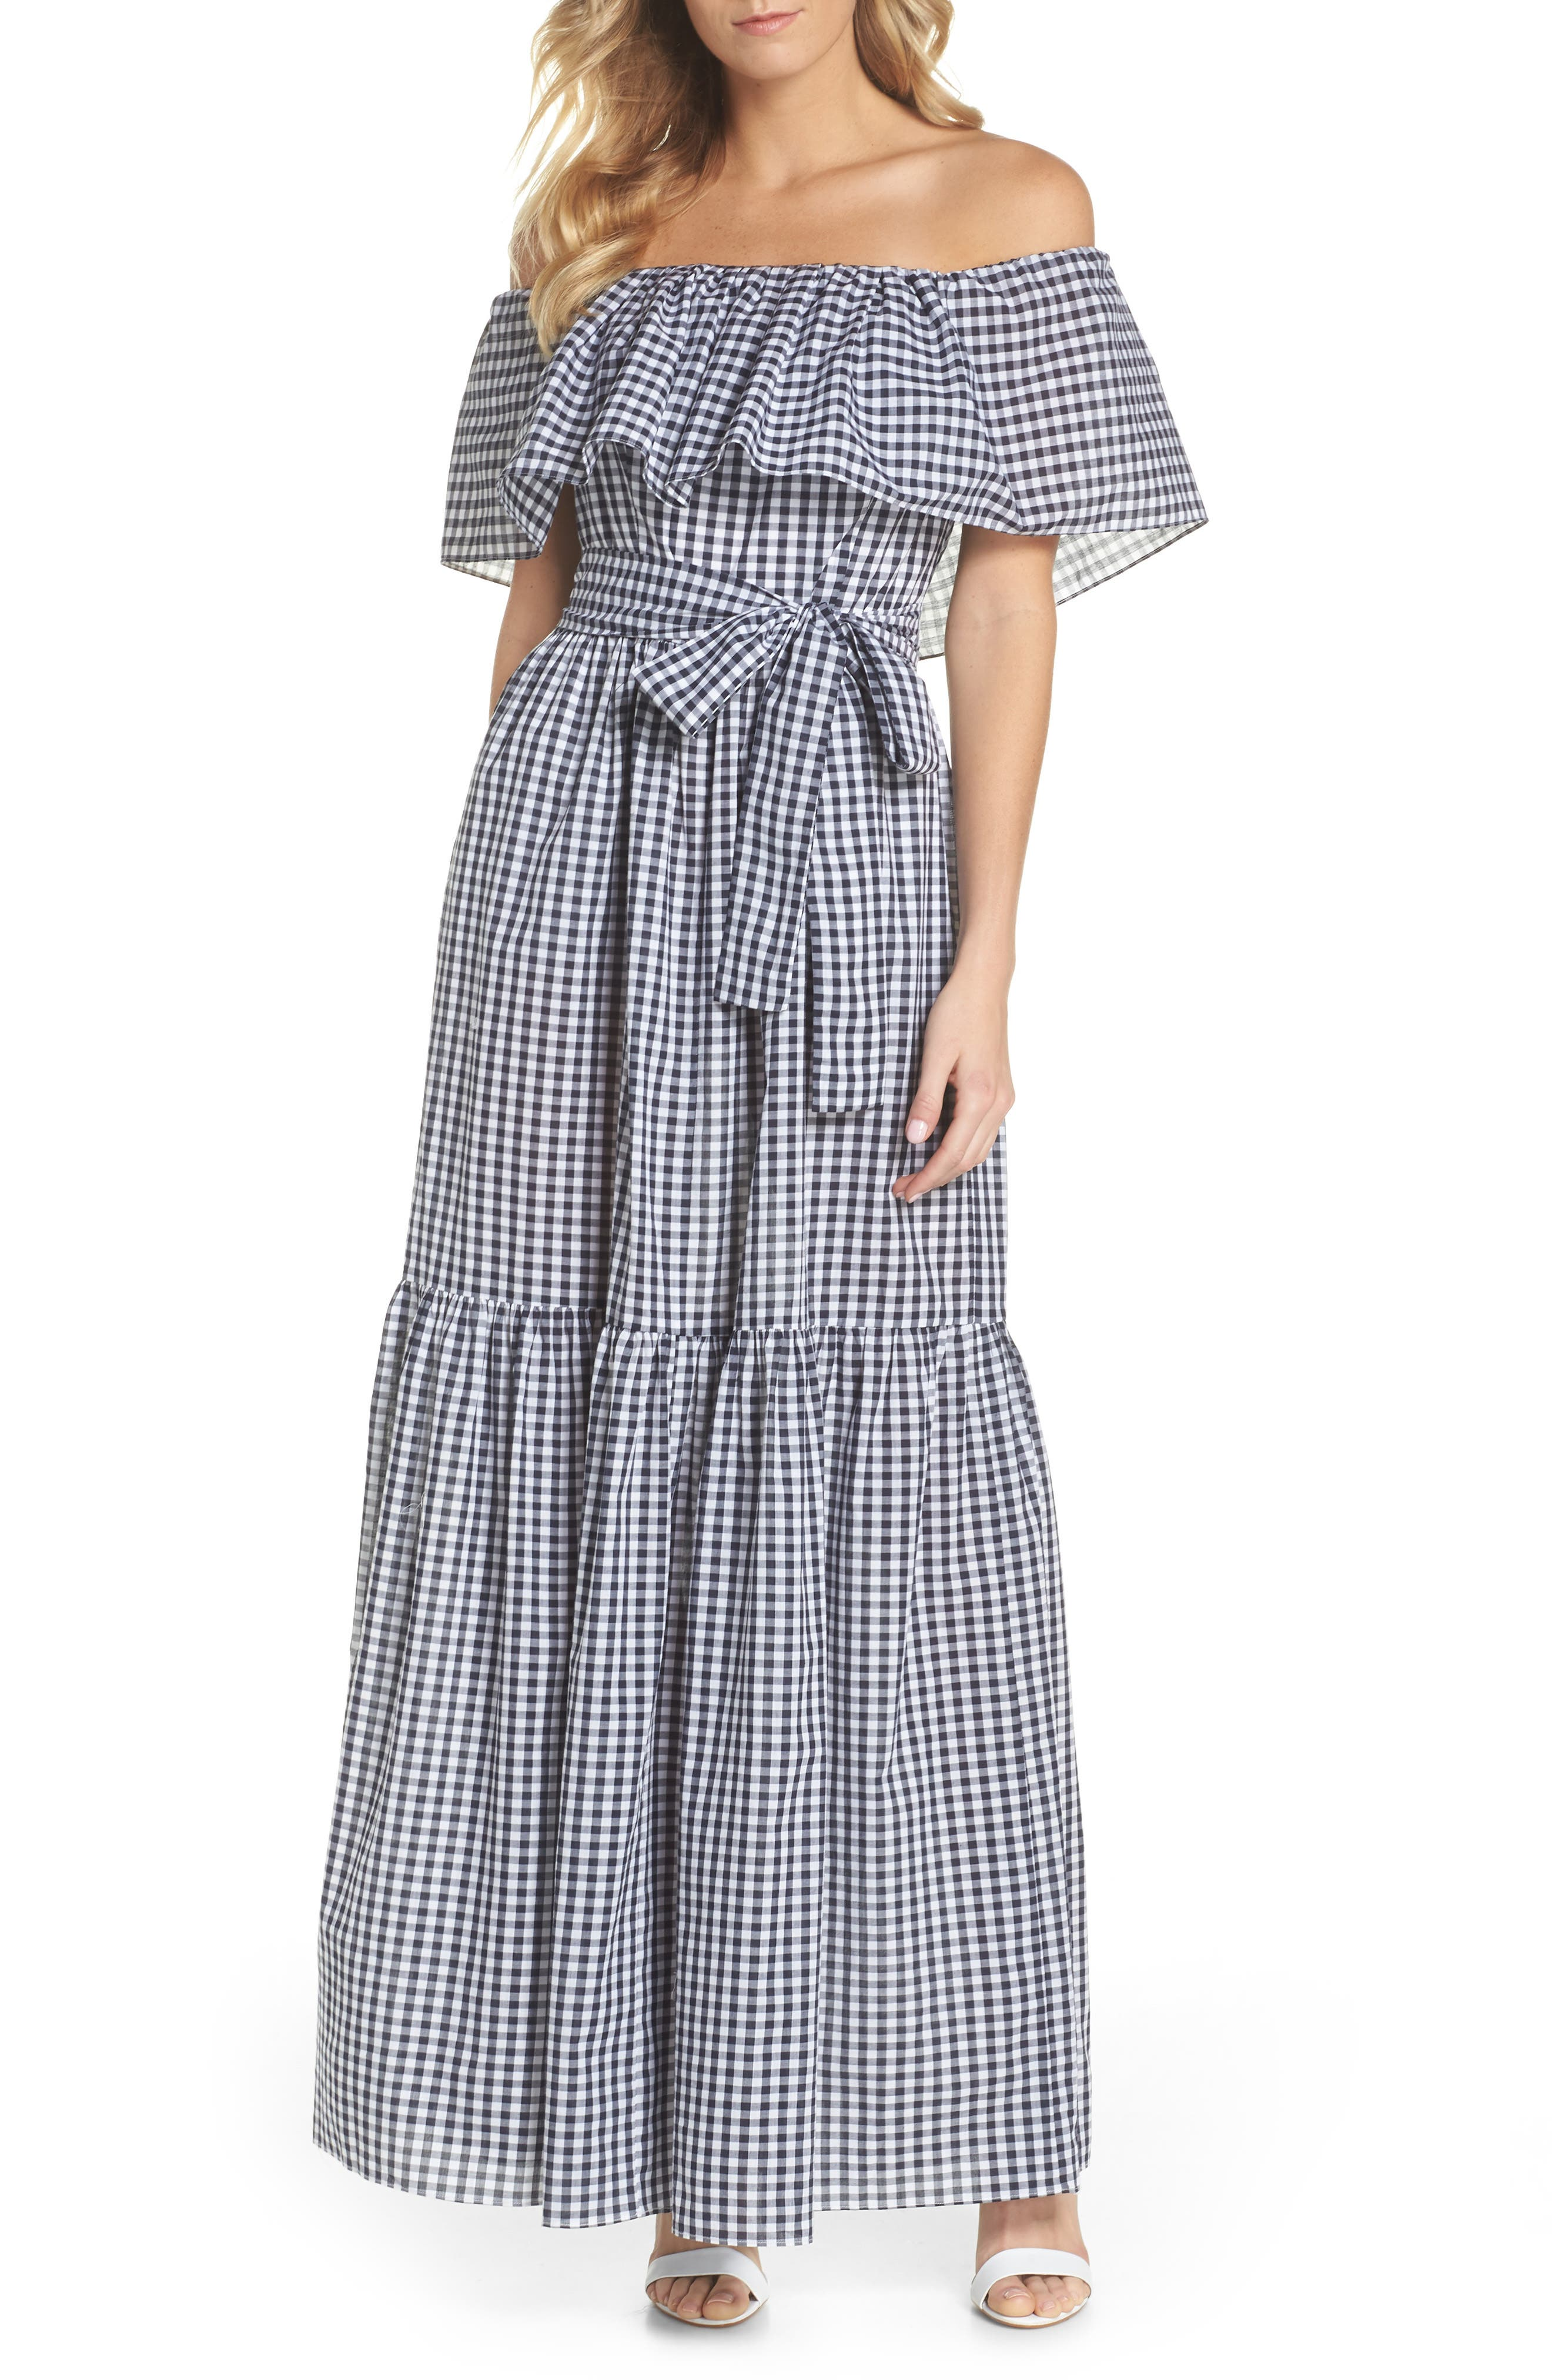 Off the Shoulder Ruffle Gingham Maxi Dress,                             Main thumbnail 1, color,                             410